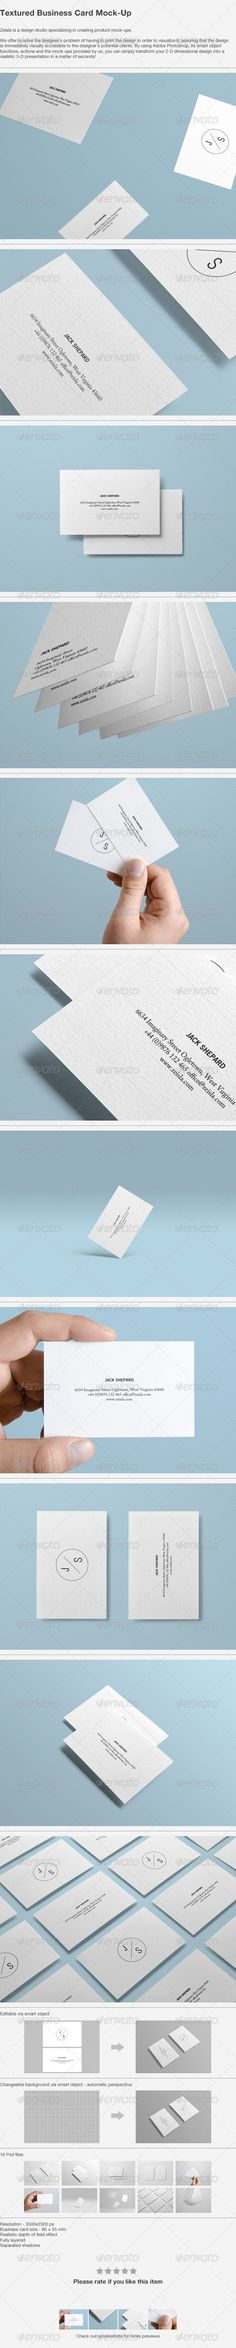 Graphicriver business card mockup photoshop mock ups pinterest graphicriver business card mockup photoshop mock ups pinterest mockup and business cards reheart Images